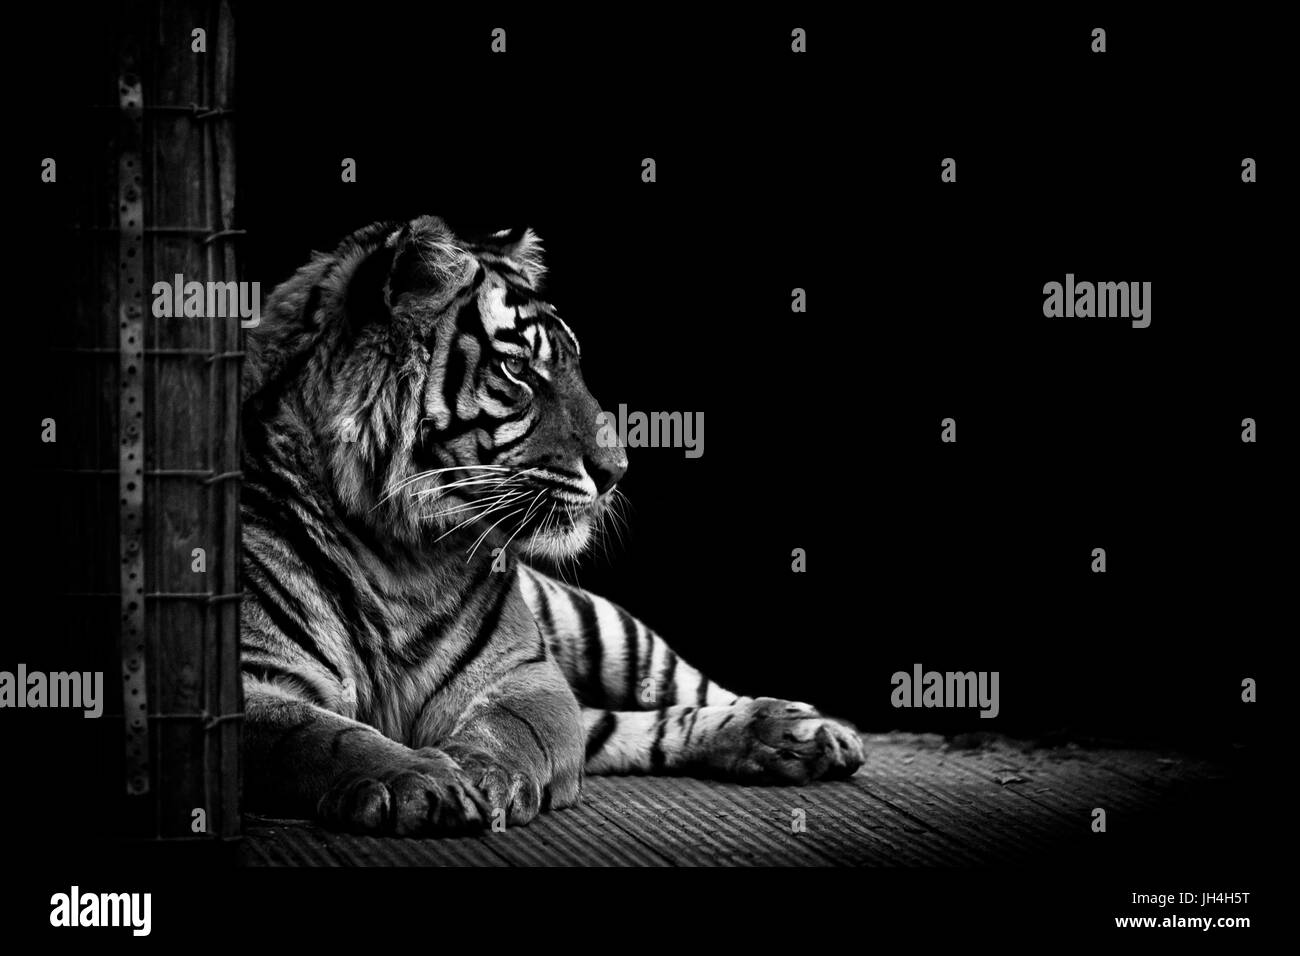 Tiger in black and white - Stock Image